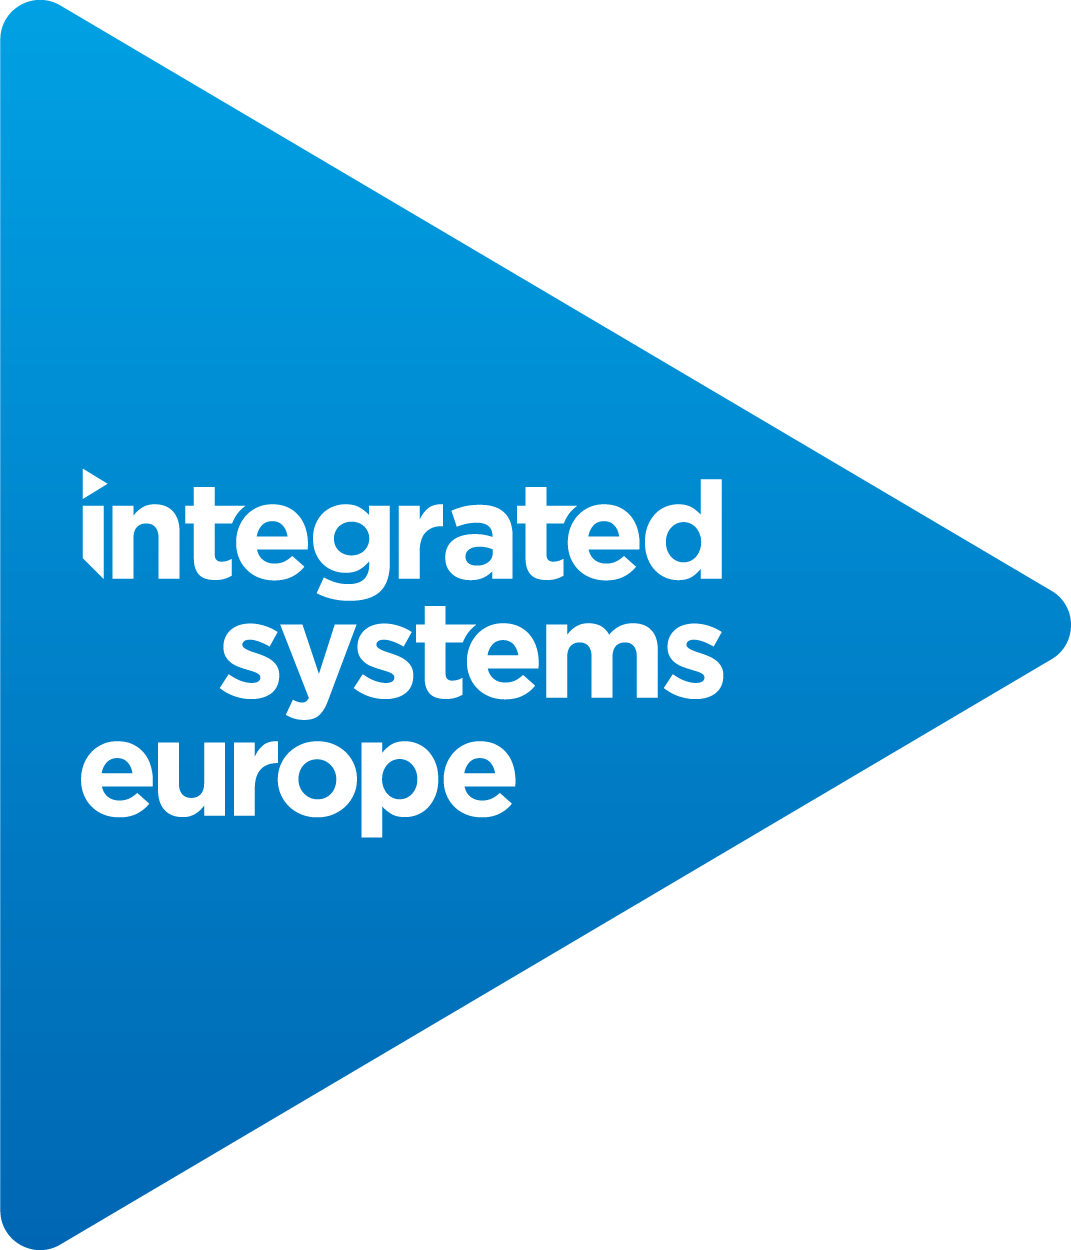 Integrated Systems Europe - 11-14 February 2020, RAI, AmsterdamPassageWay are supported by the Department For International Trade for this exhibition and will be located at their International Trade Pavilion.